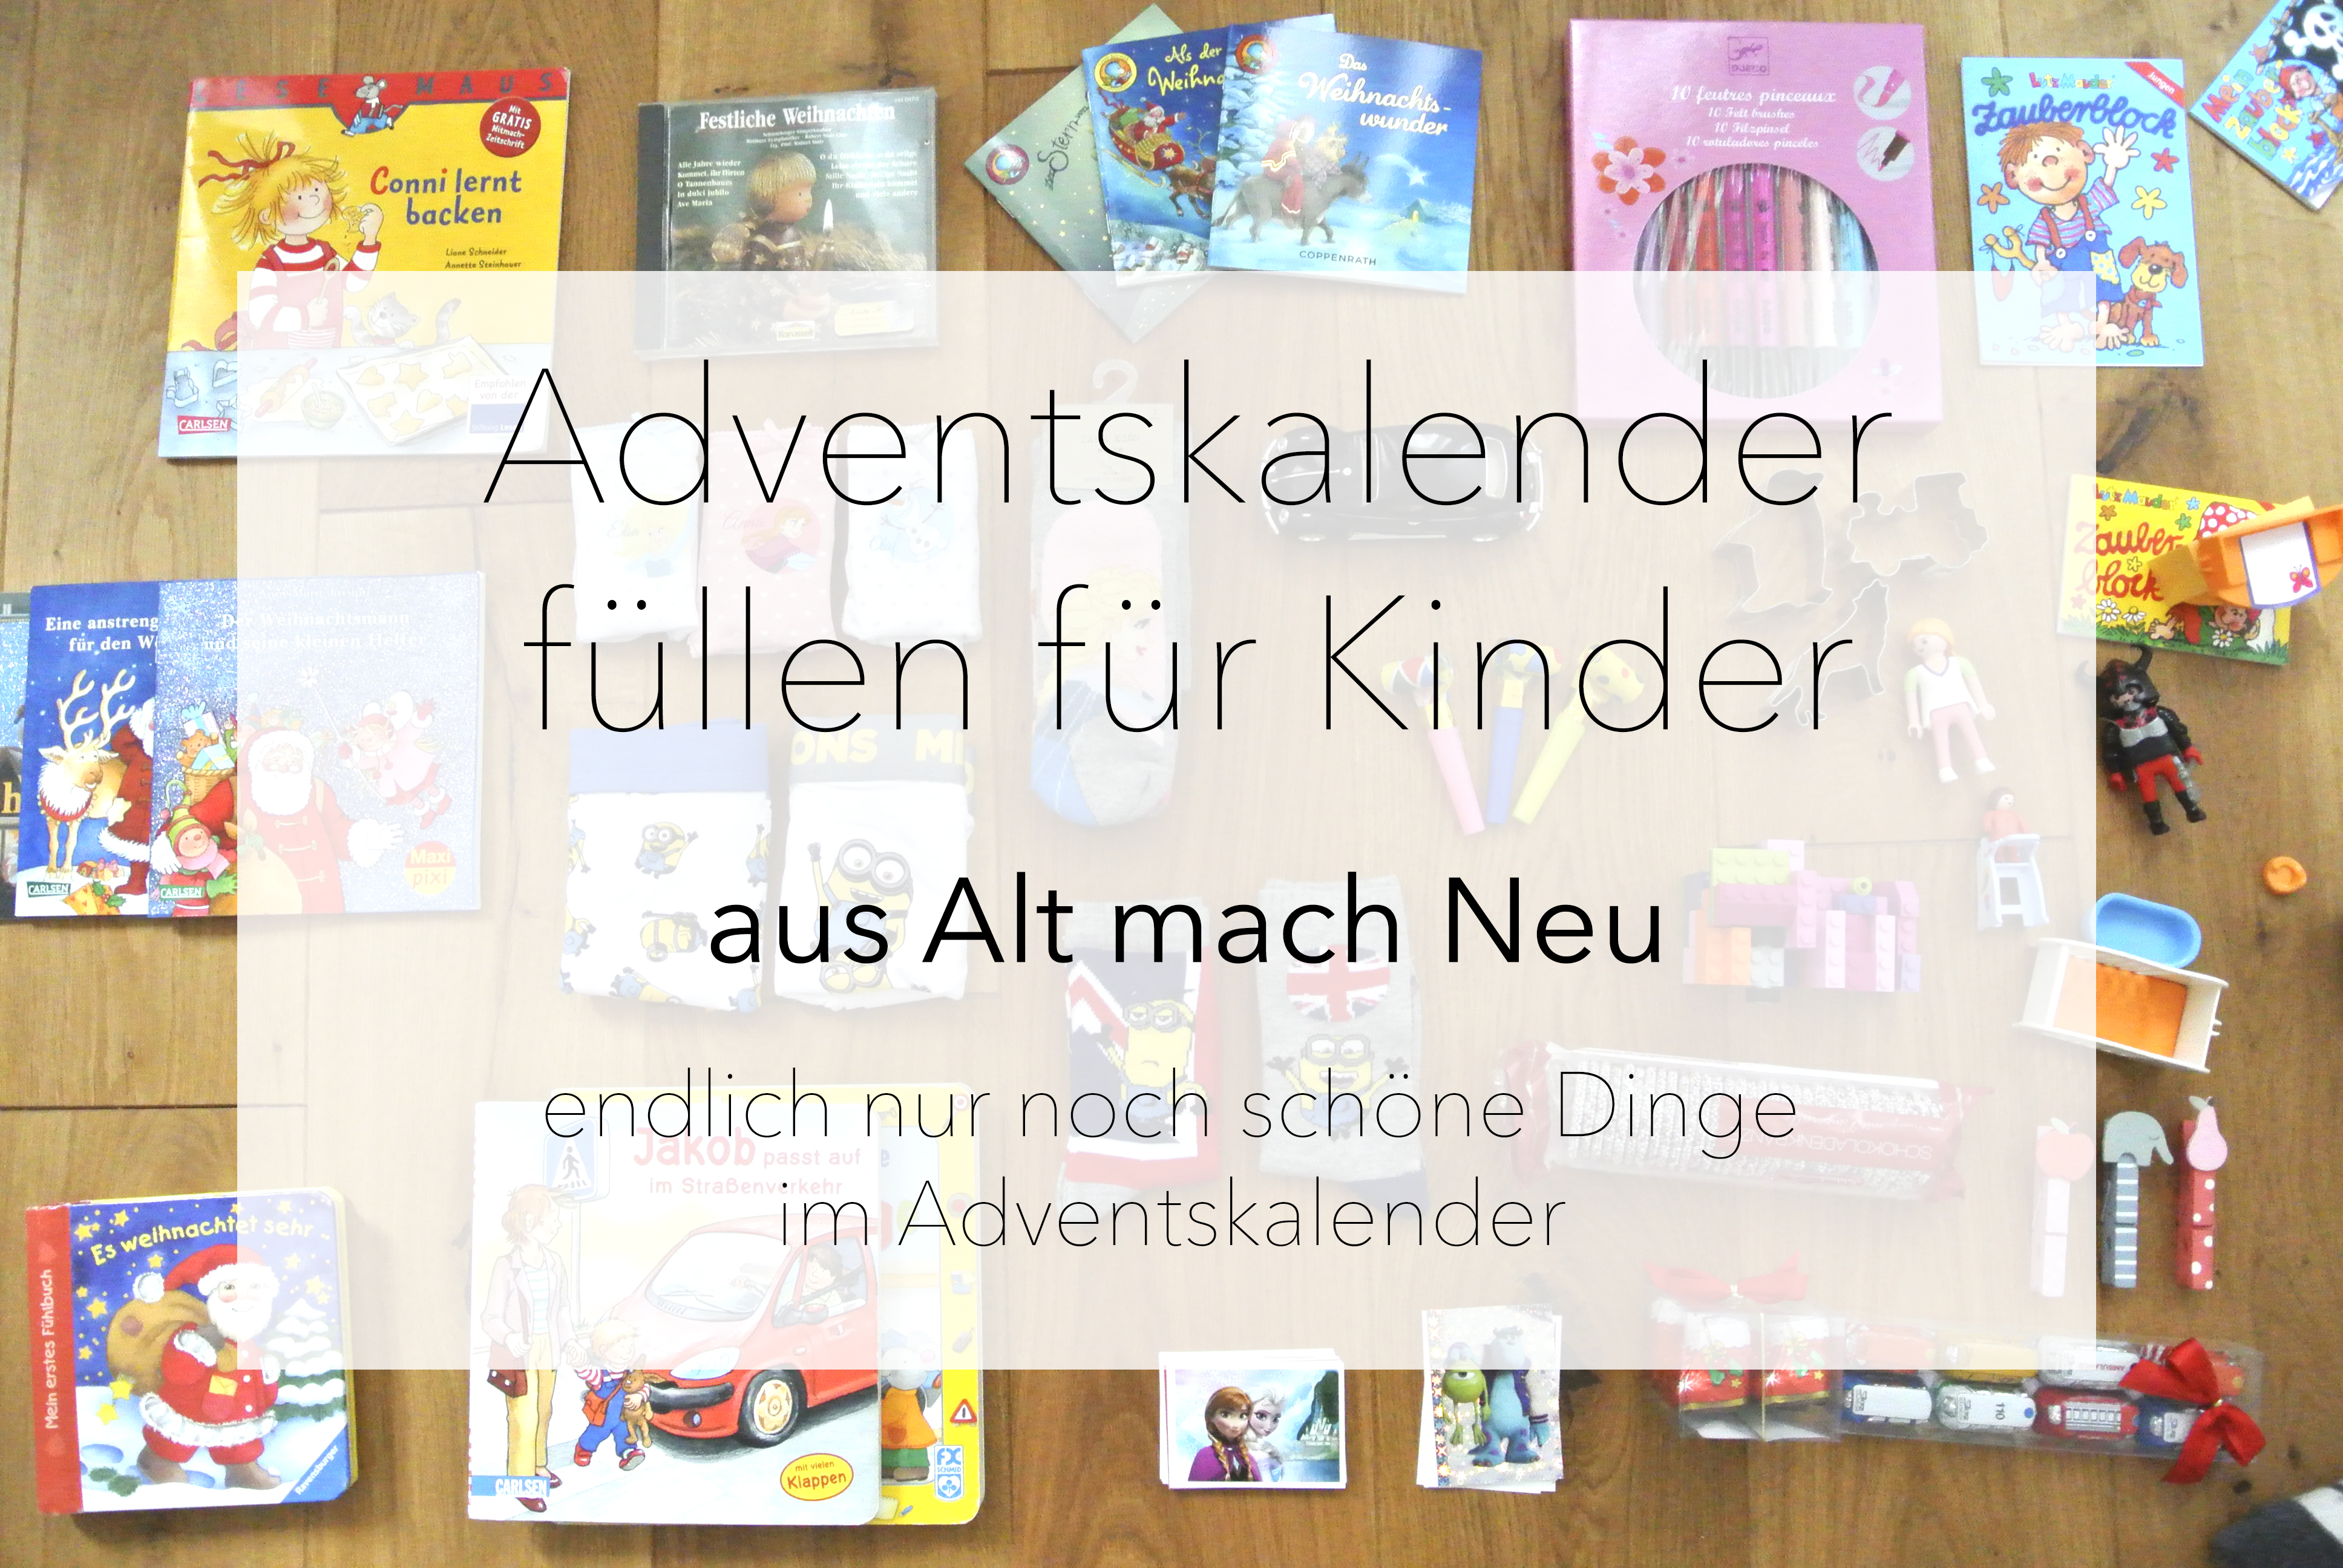 adventskalender f llen f r kinder aus alt mach neu rosanisiert. Black Bedroom Furniture Sets. Home Design Ideas